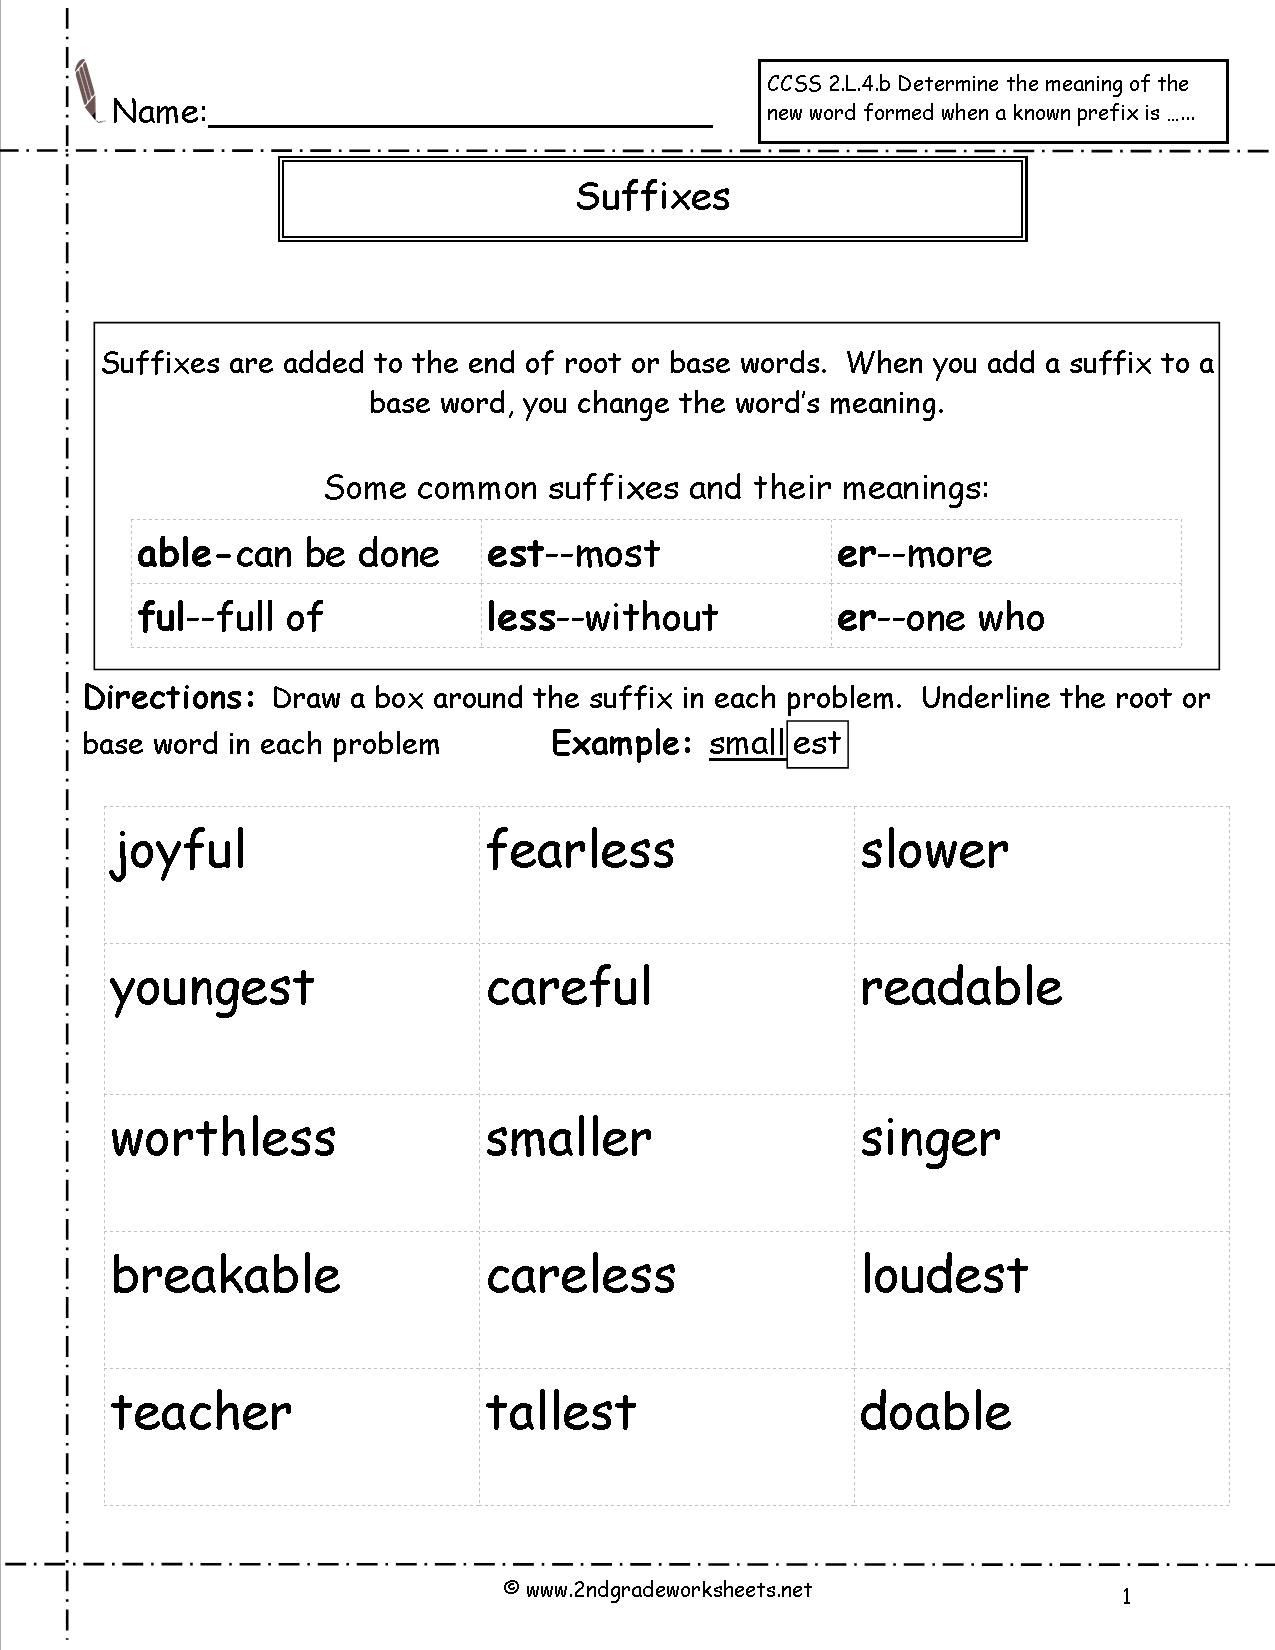 Suffix Worksheets for 4th Grade 41 Innovative Prefix Worksheets for You